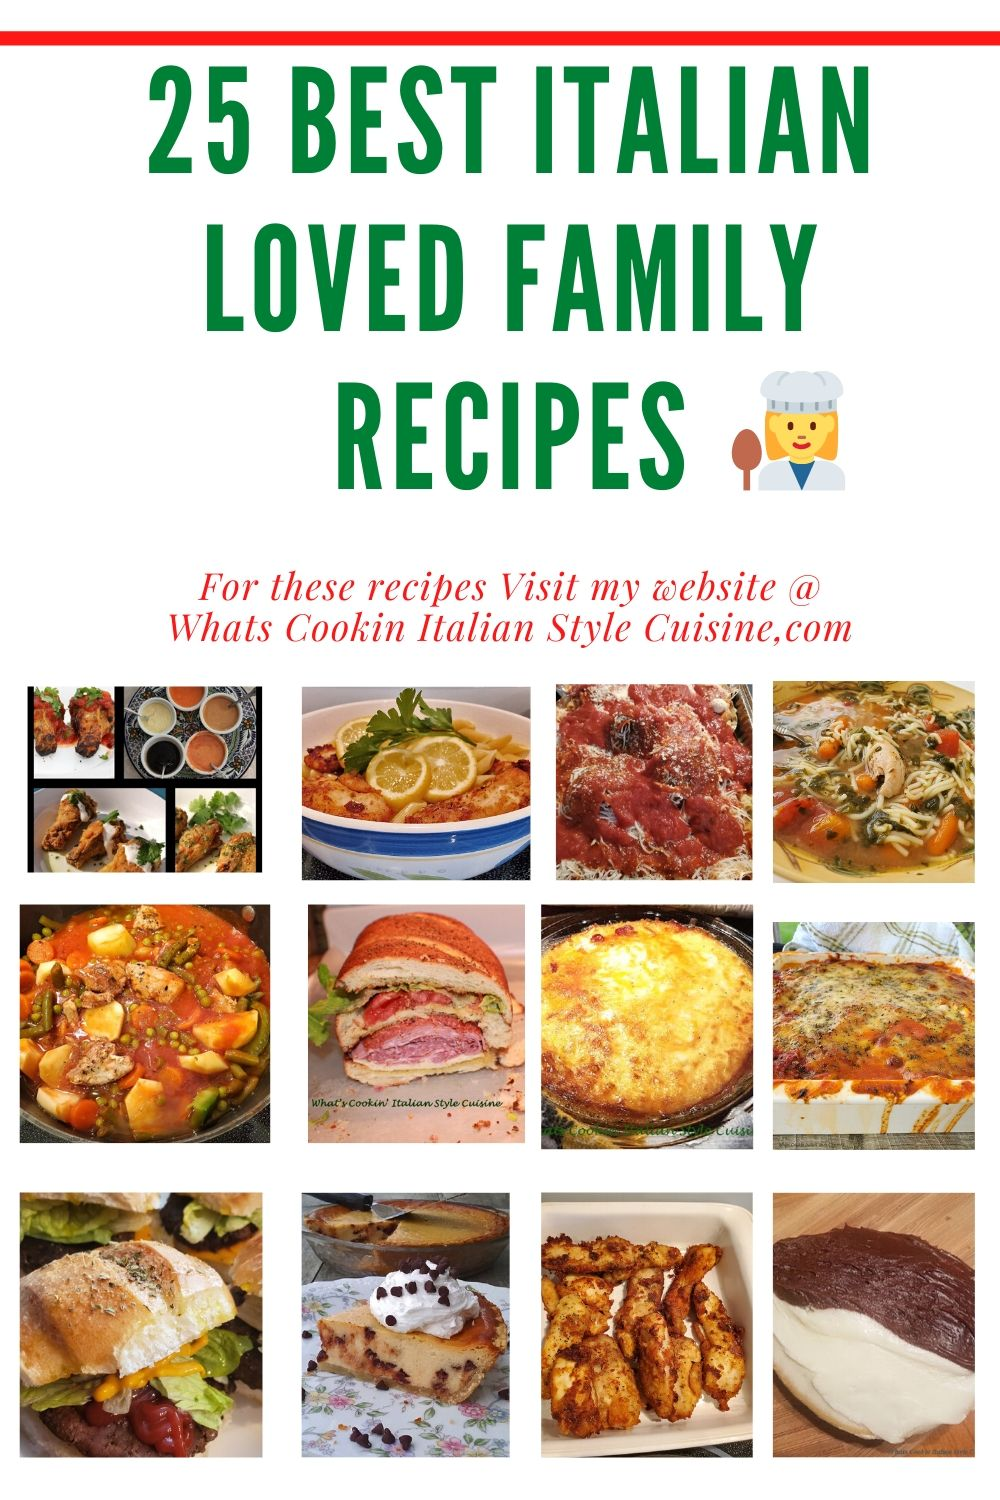 this is a pin for 25 best Italian recipes in a roundup and thumbnail photos of the roundup